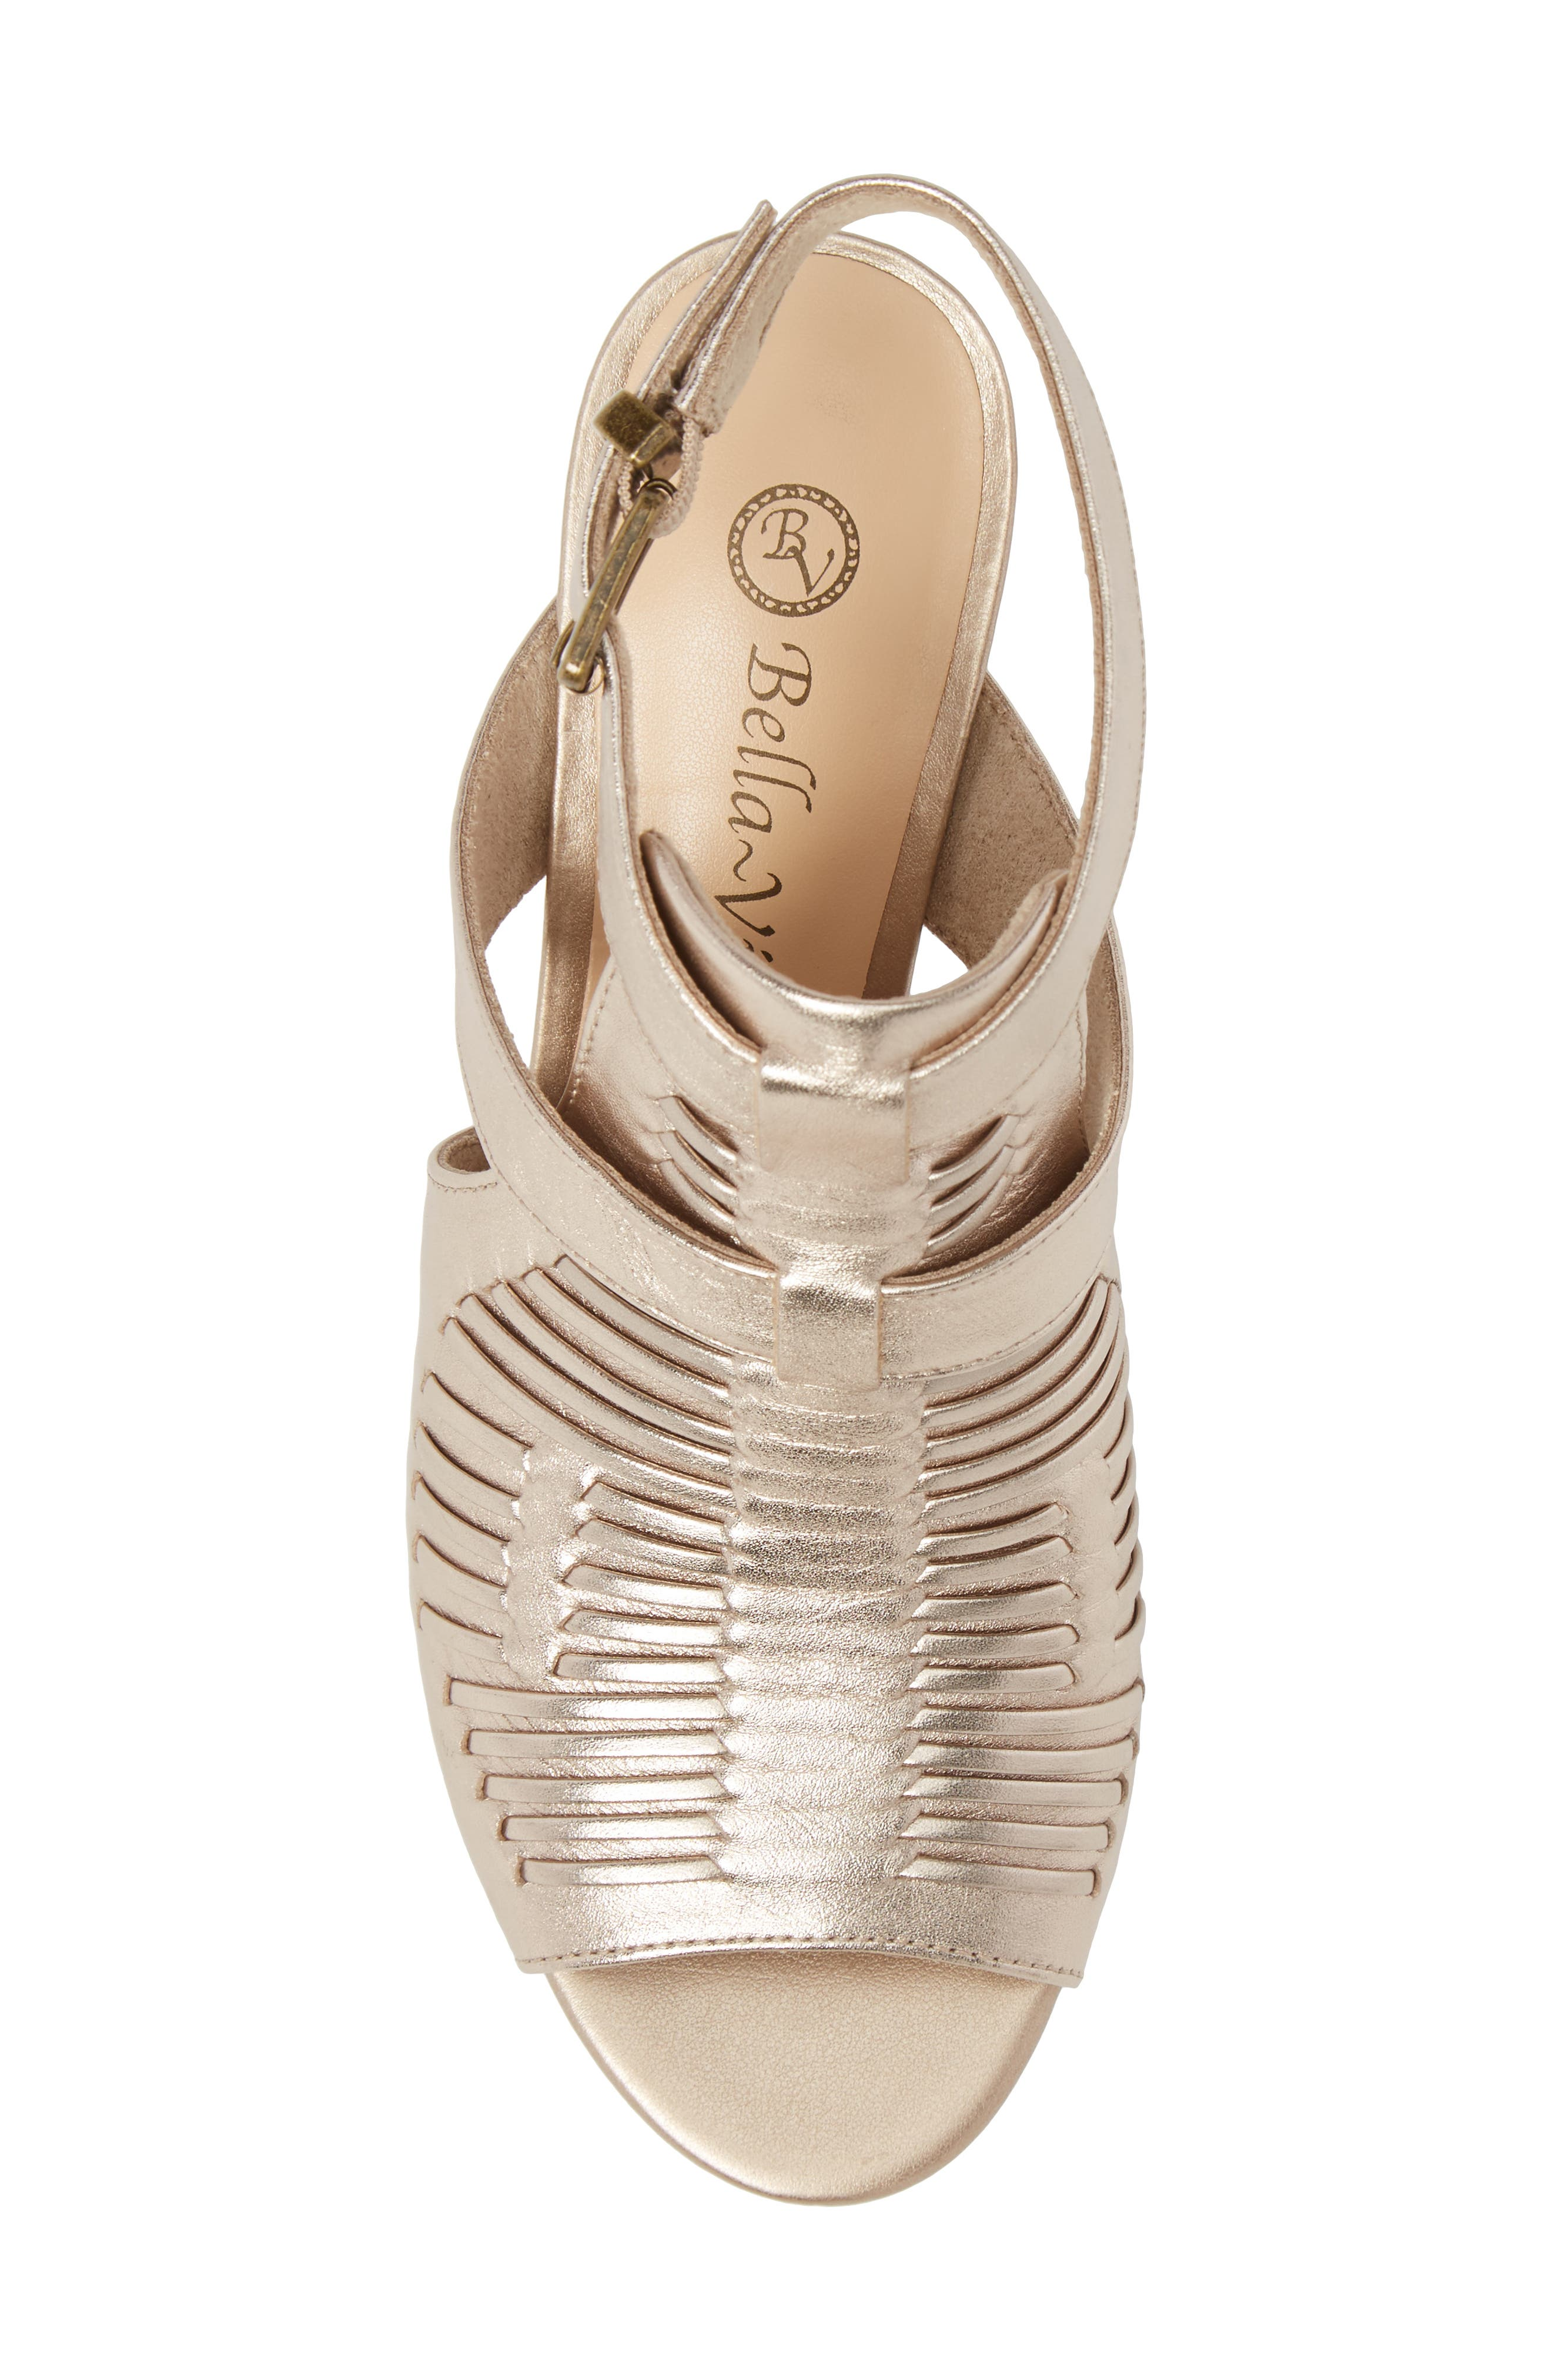 Finley Ankle Strap Sandal,                             Alternate thumbnail 5, color,                             Champagne Fabric